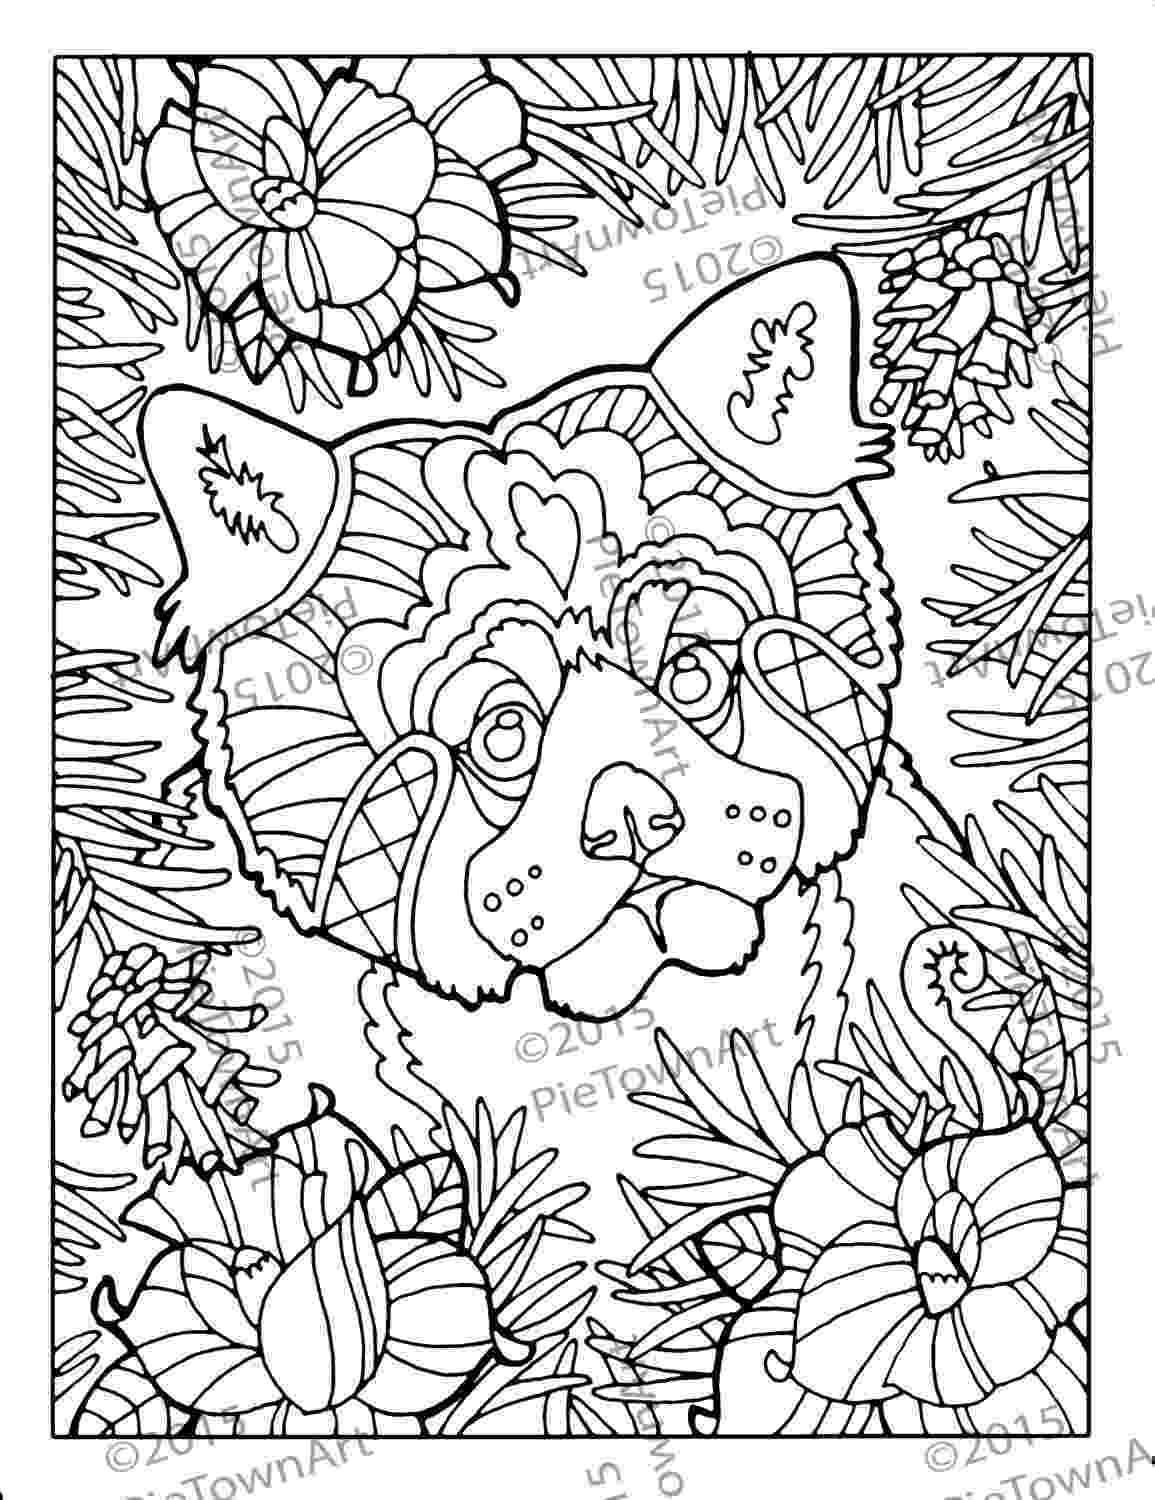 red panda coloring pages happy red panda coloring pages free printable coloring pages pages panda red coloring